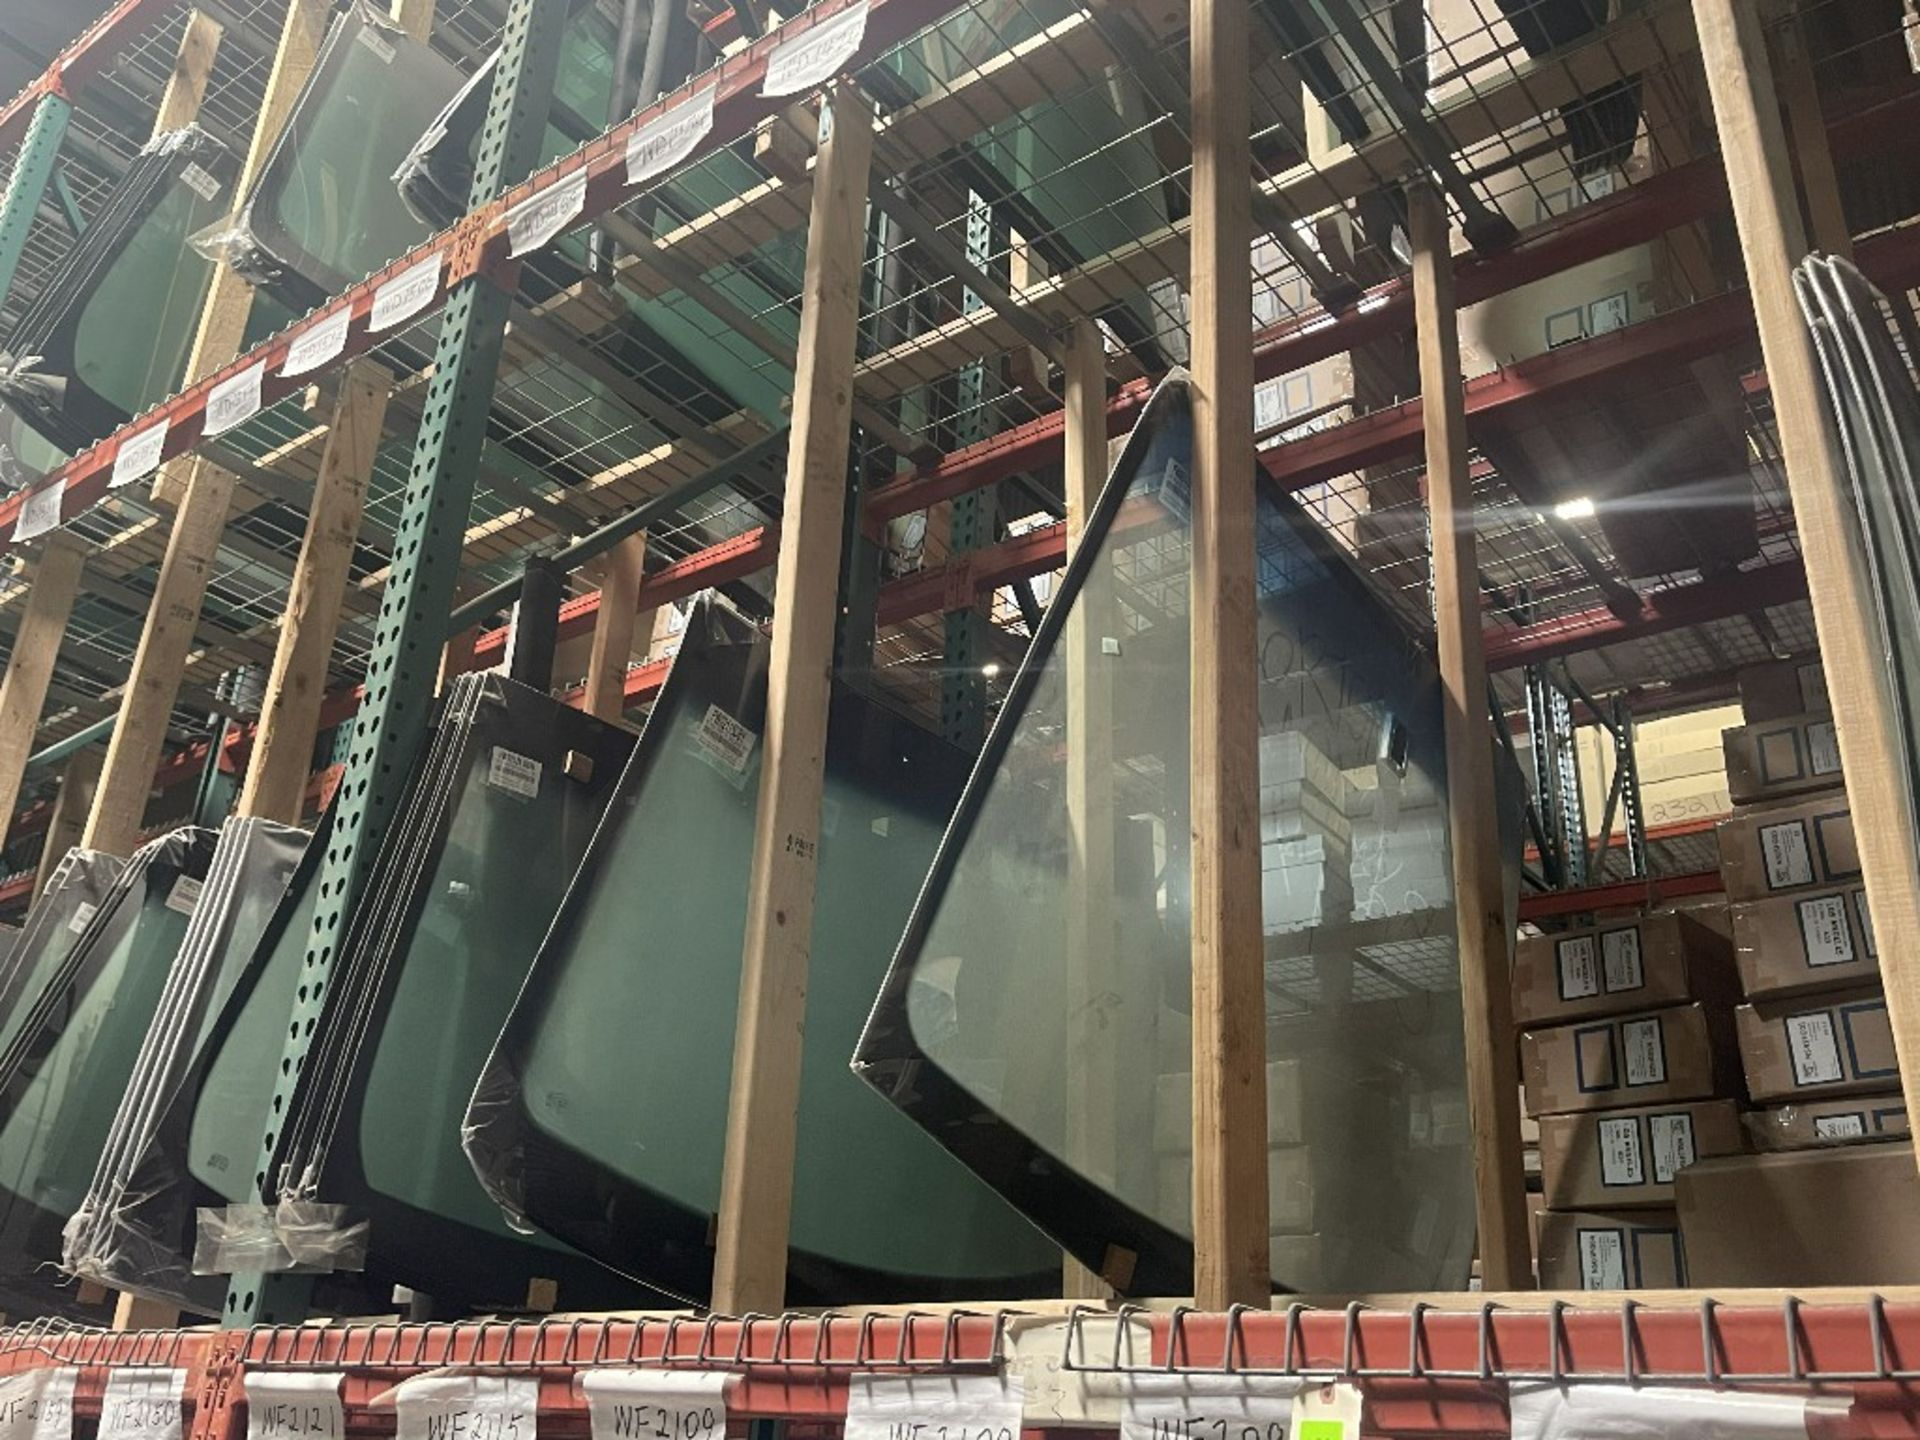 (1 SECTION) ASST WINDSHIELDS WD1468 WD1459 - Image 2 of 2